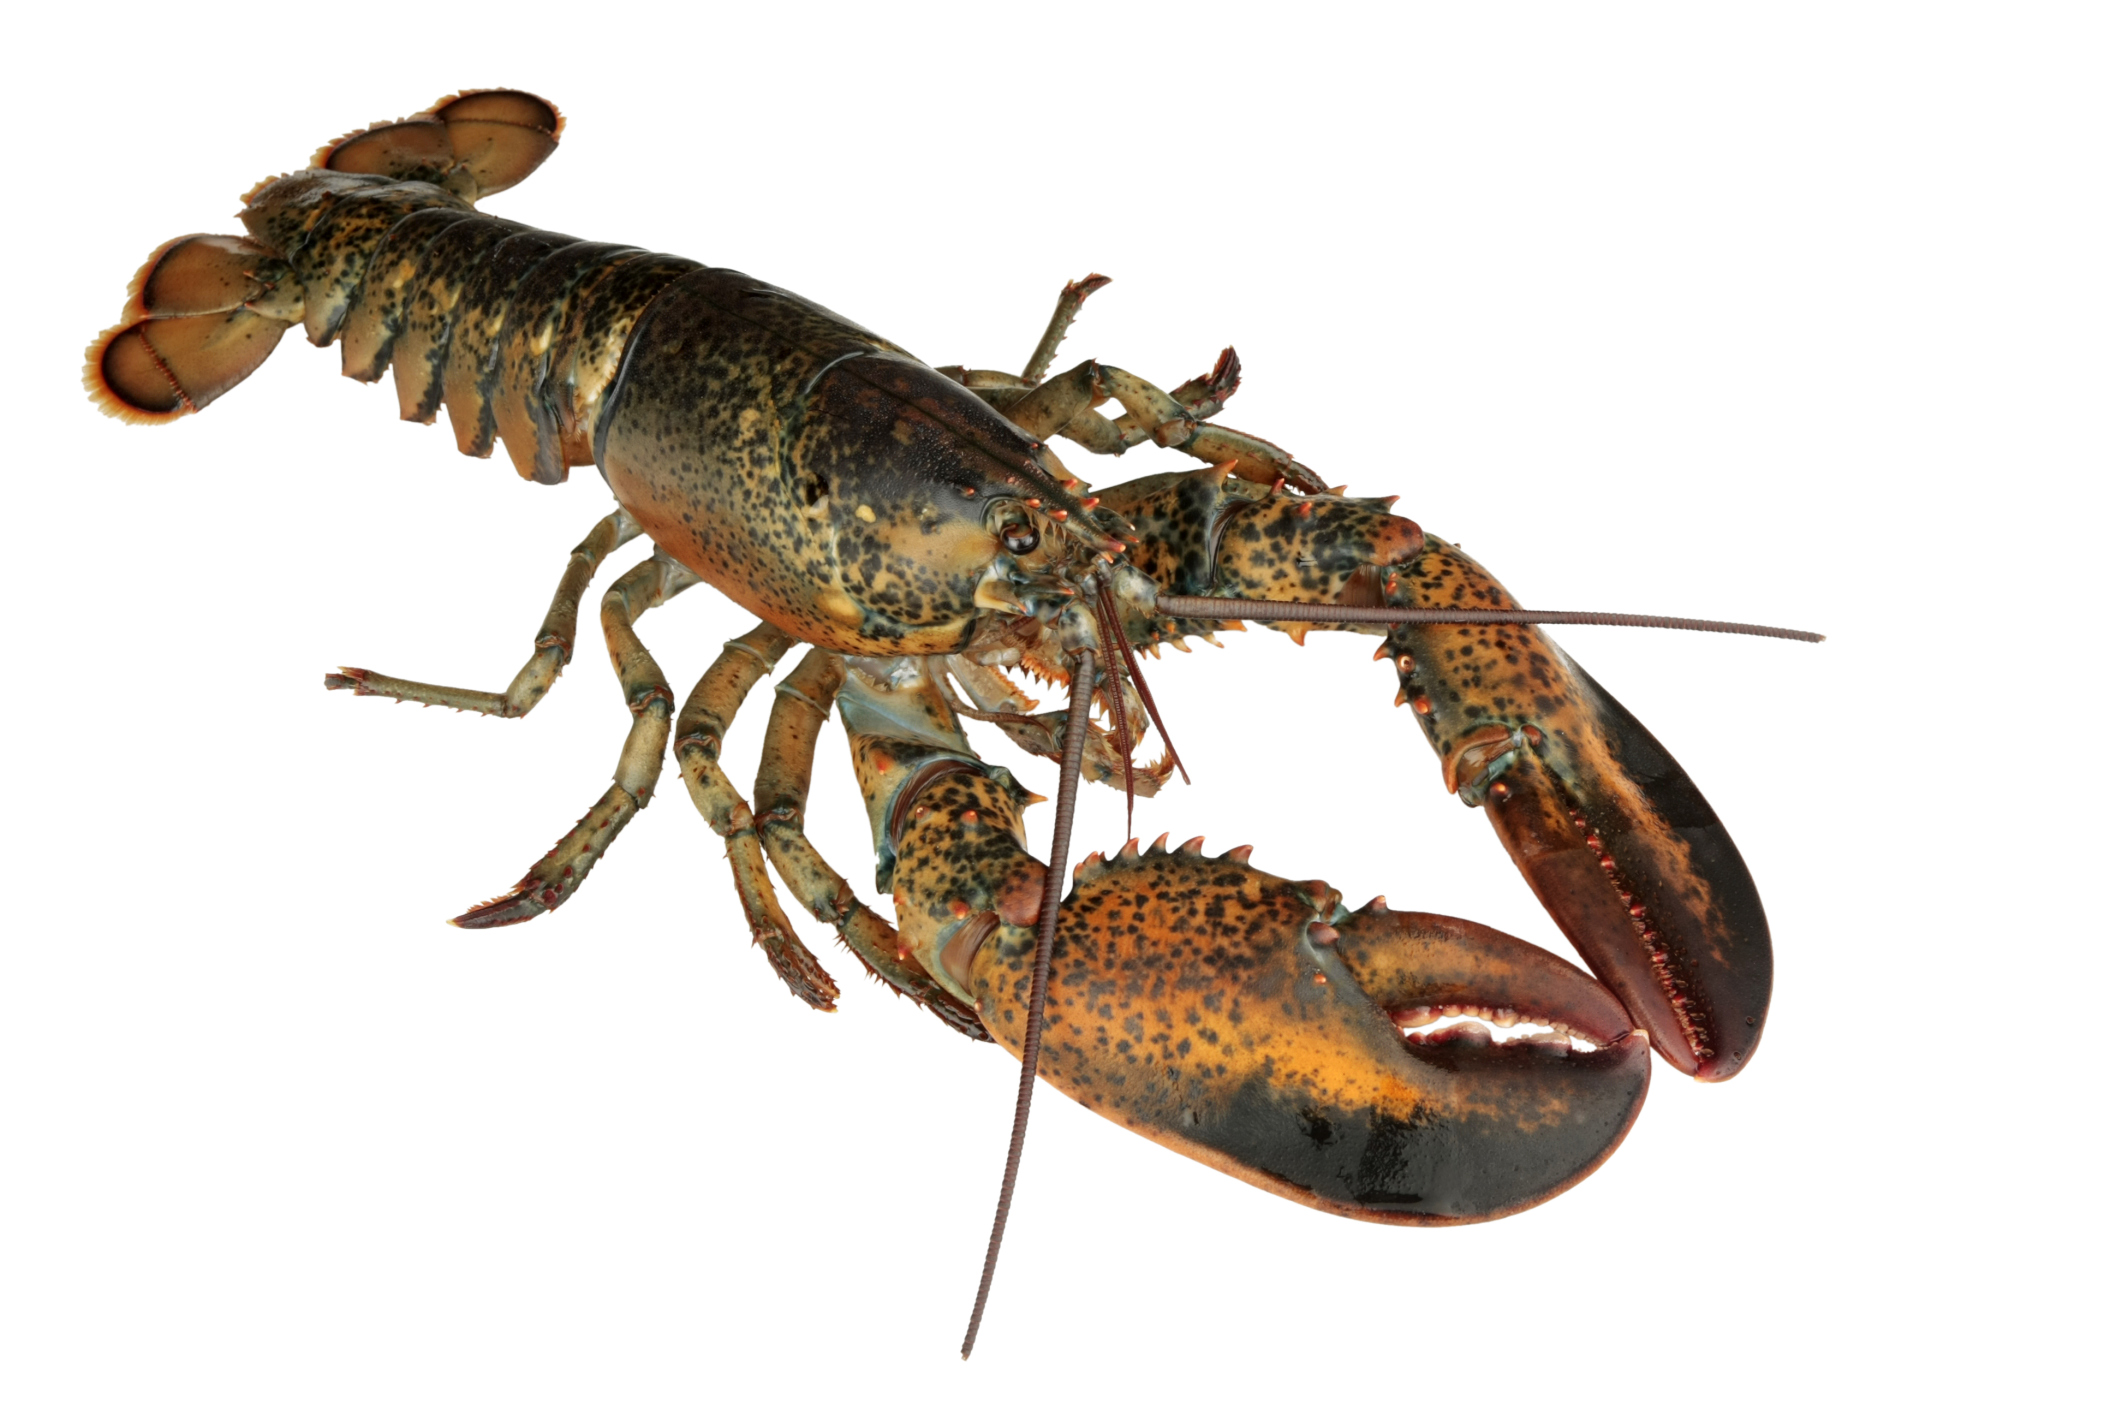 North American Lobster